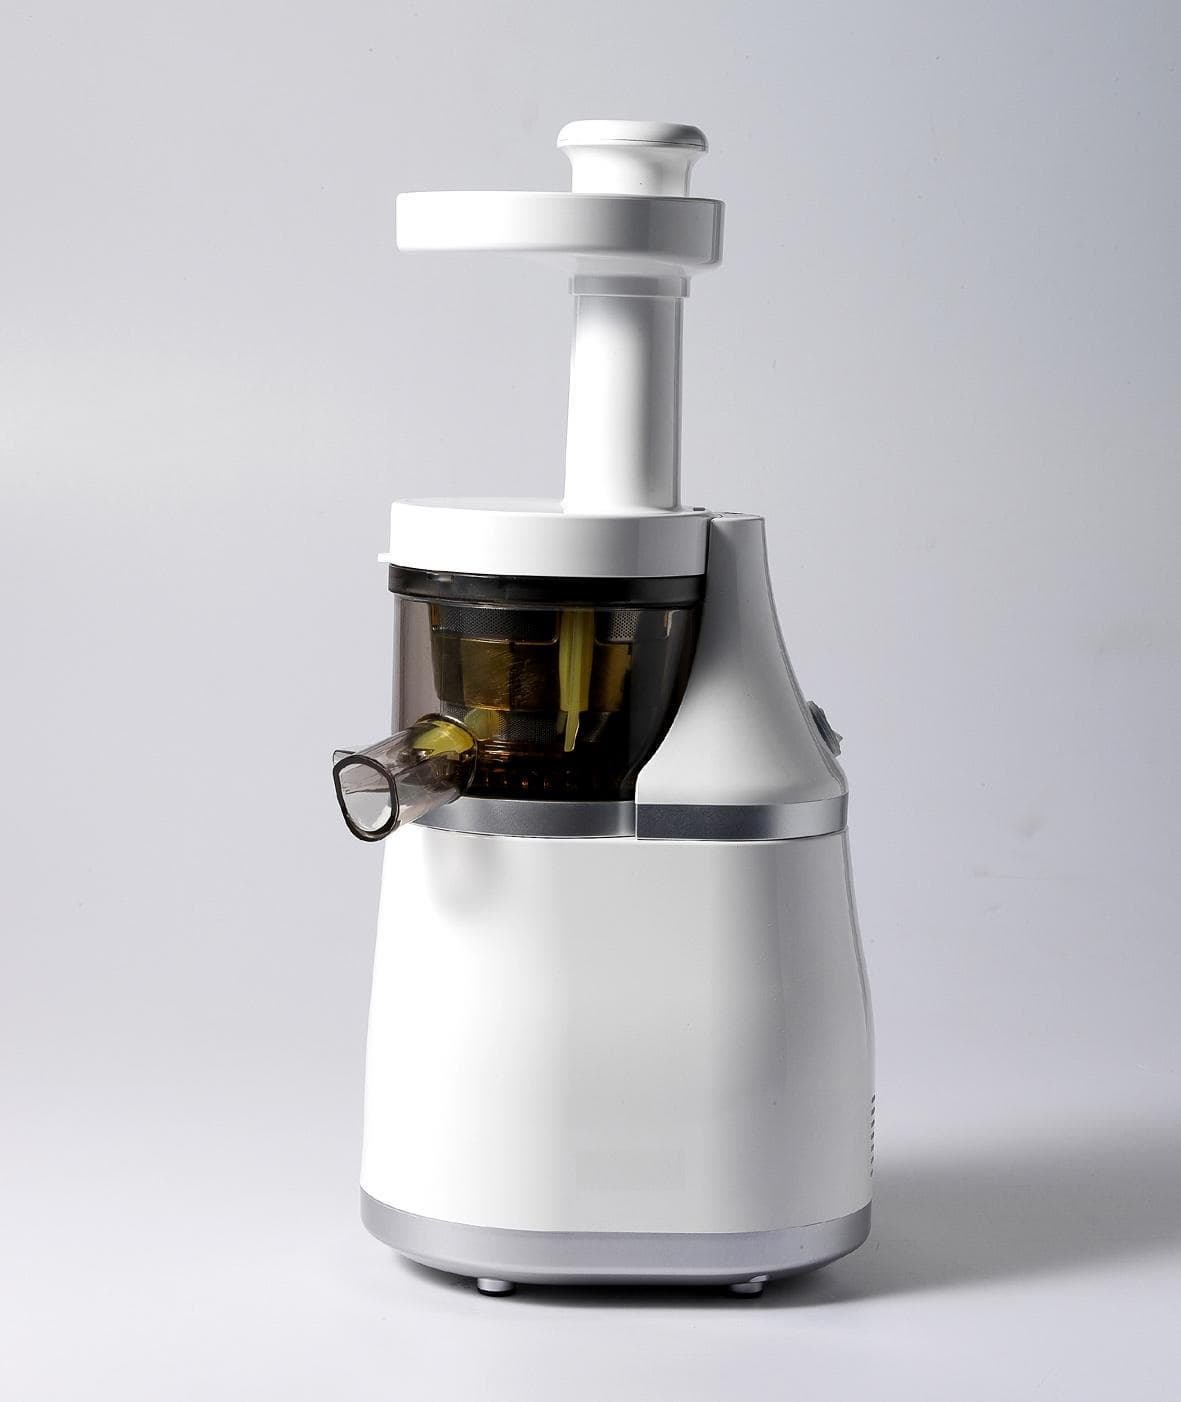 Magic Slow Juicer Review : MAGIC Slow Juicer from KHEO SUNG WORLD INC. B2B marketplace portal & South Korea product ...